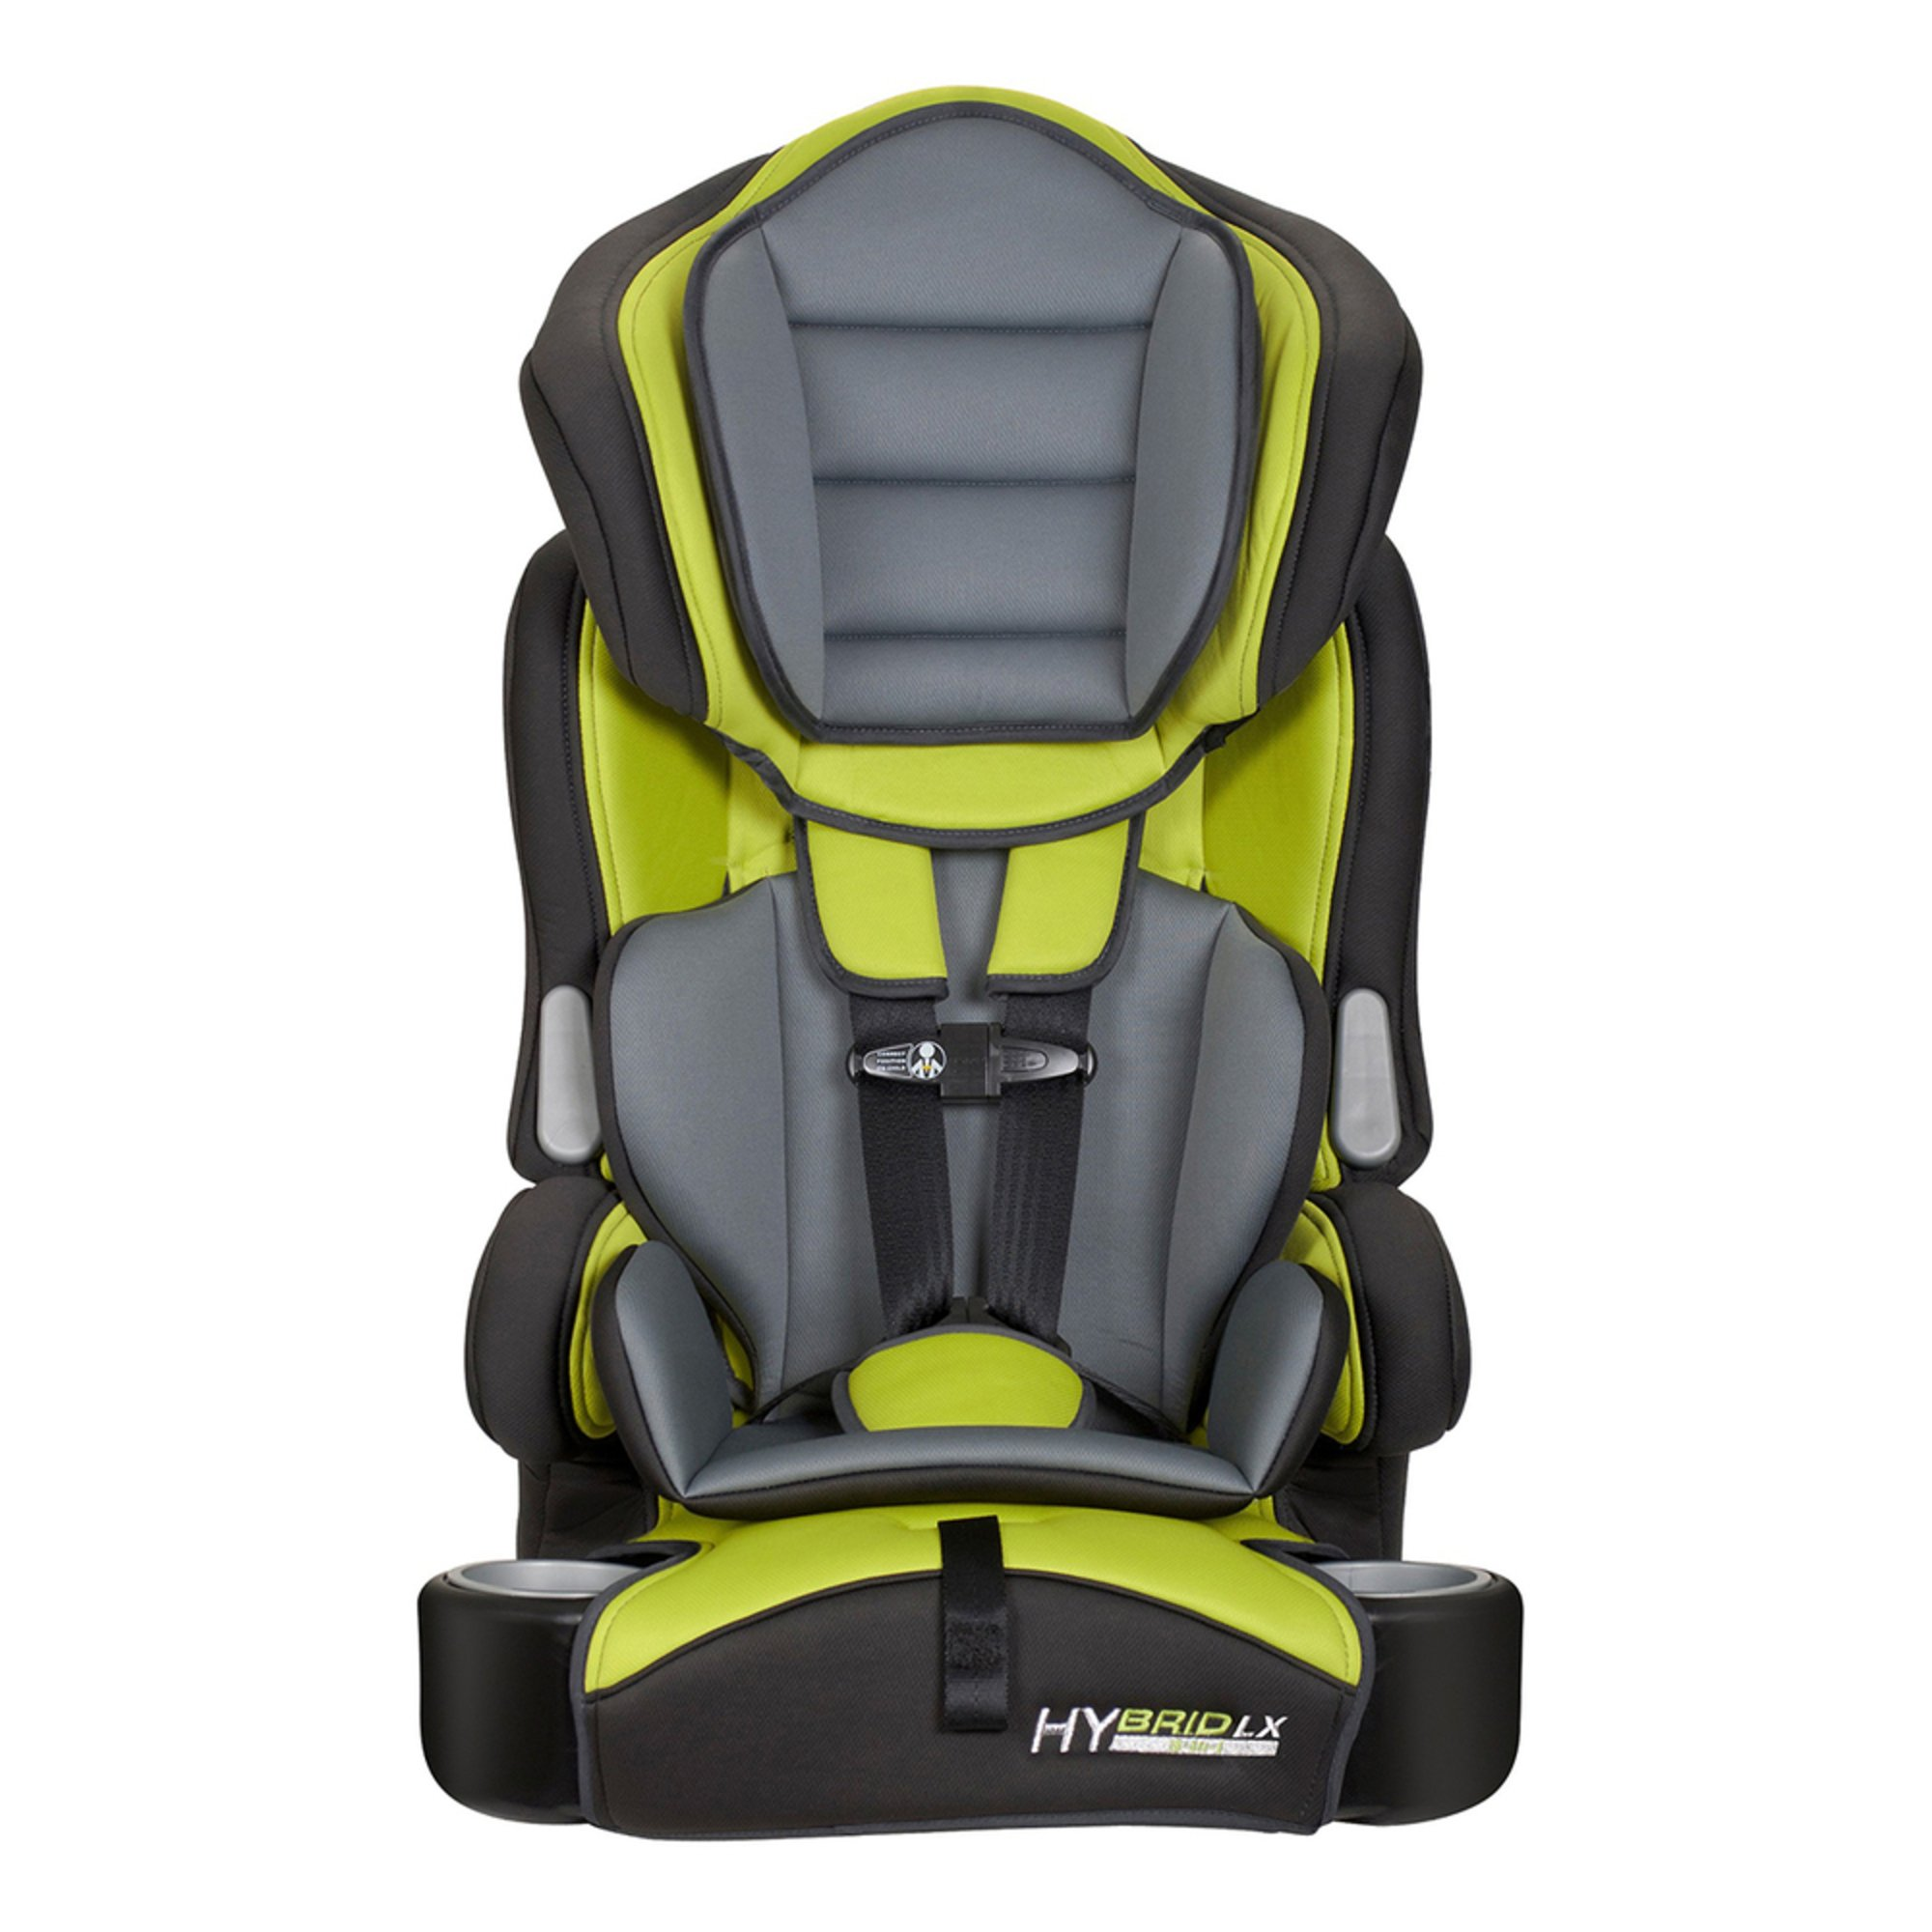 baby trend hybrid booster 3 in 1 car seat kiwi booster car seats baby kids toys shop. Black Bedroom Furniture Sets. Home Design Ideas